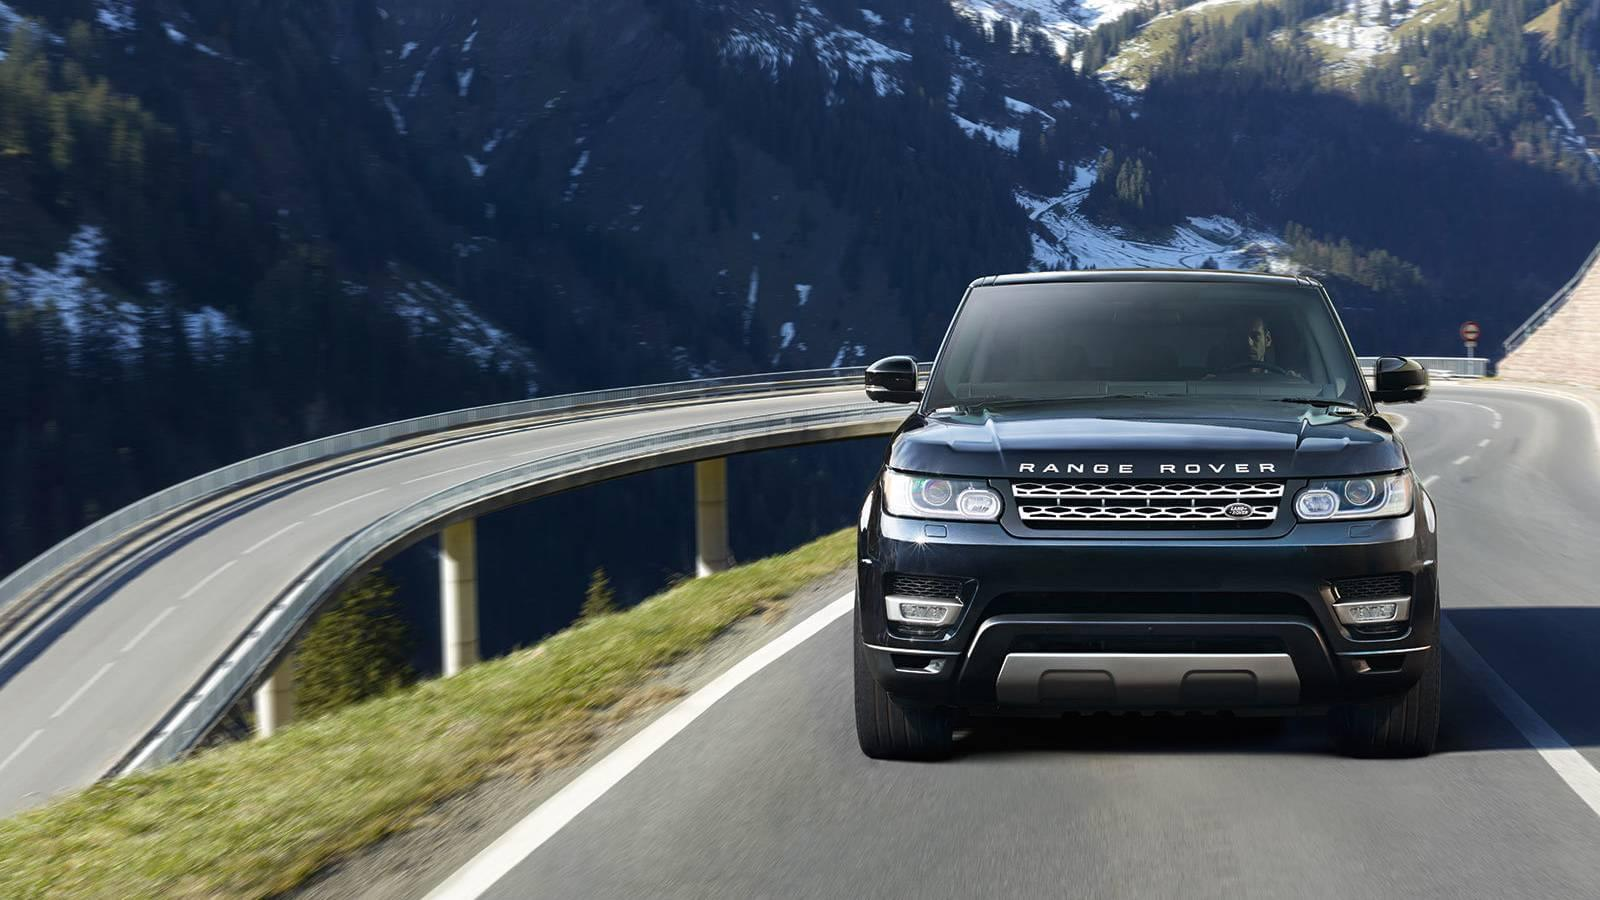 Land Rover Monmouth In Ocean NJ New Amp Used Cars